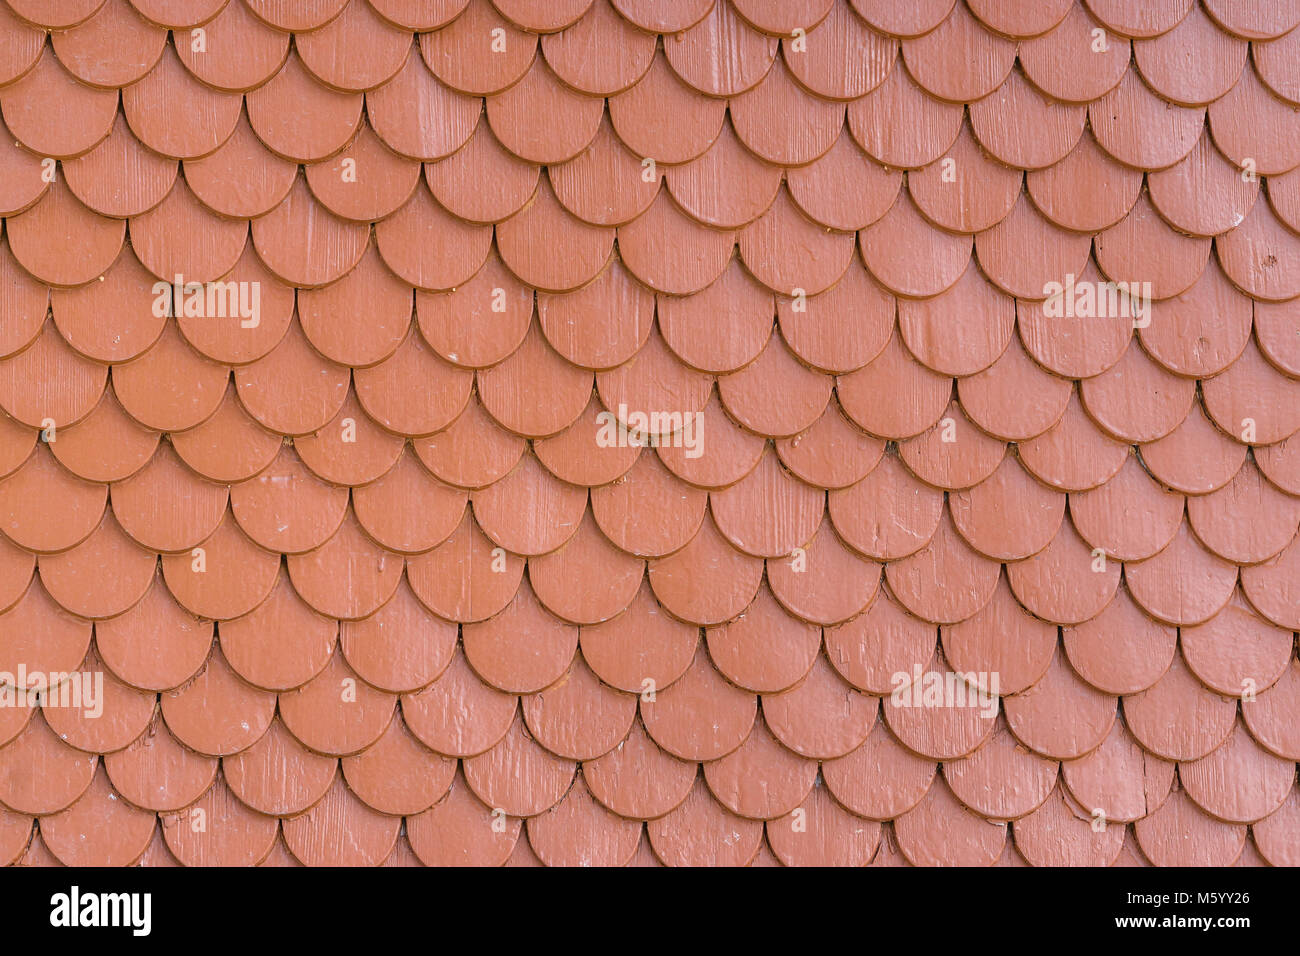 Red painted wood tiling roof wall texture background - Stock Image